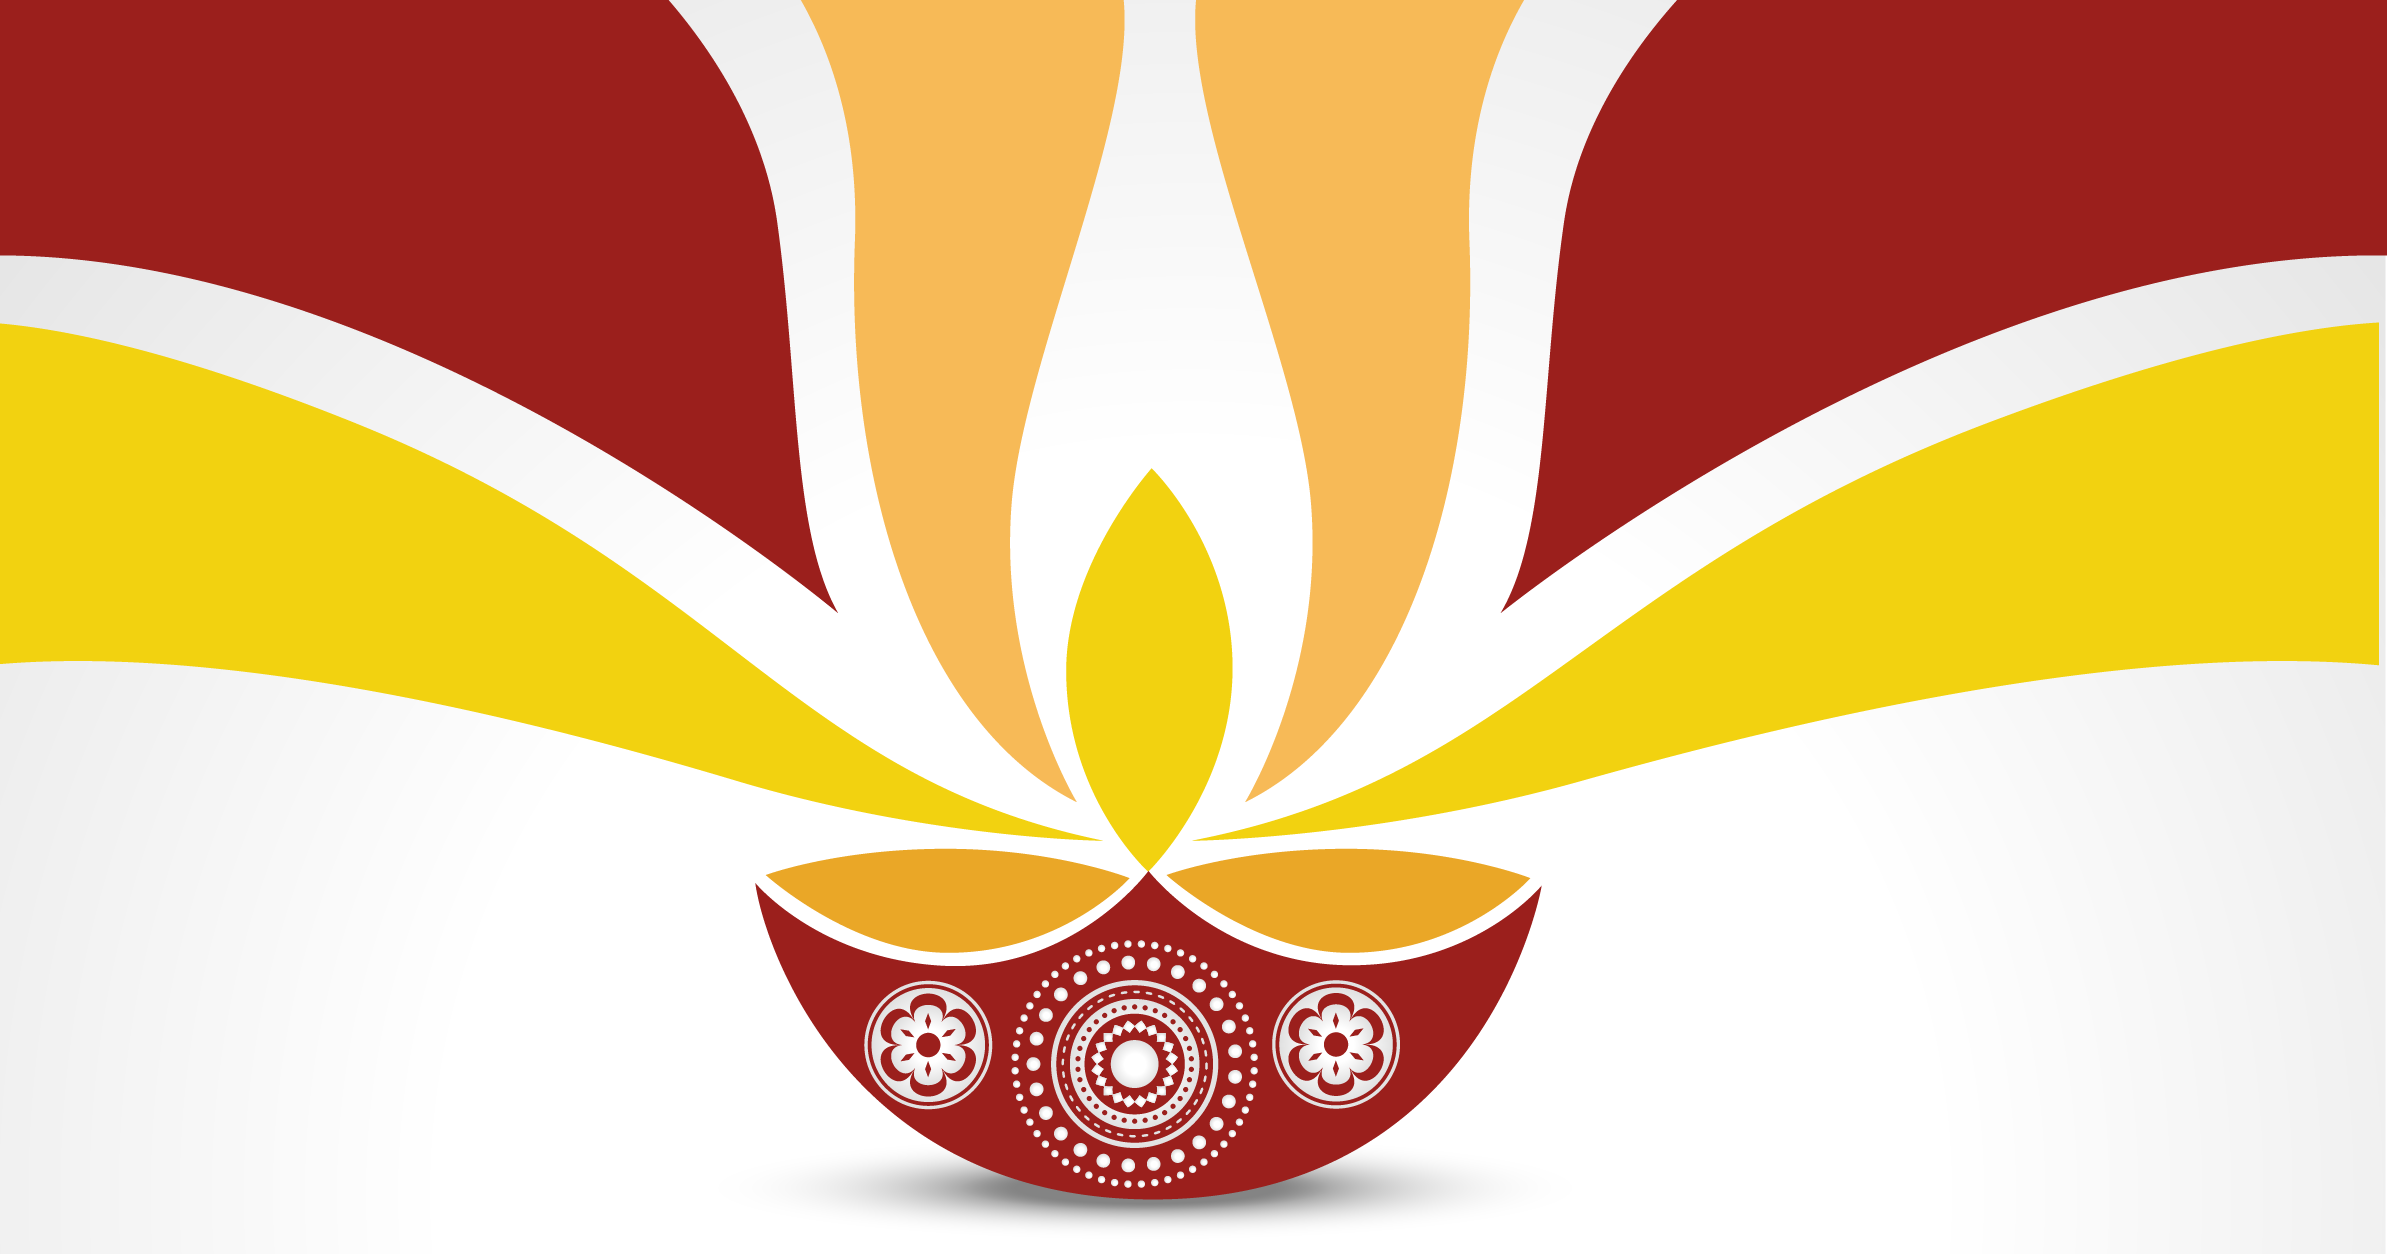 Diwali Png Available In Different Size image #30799